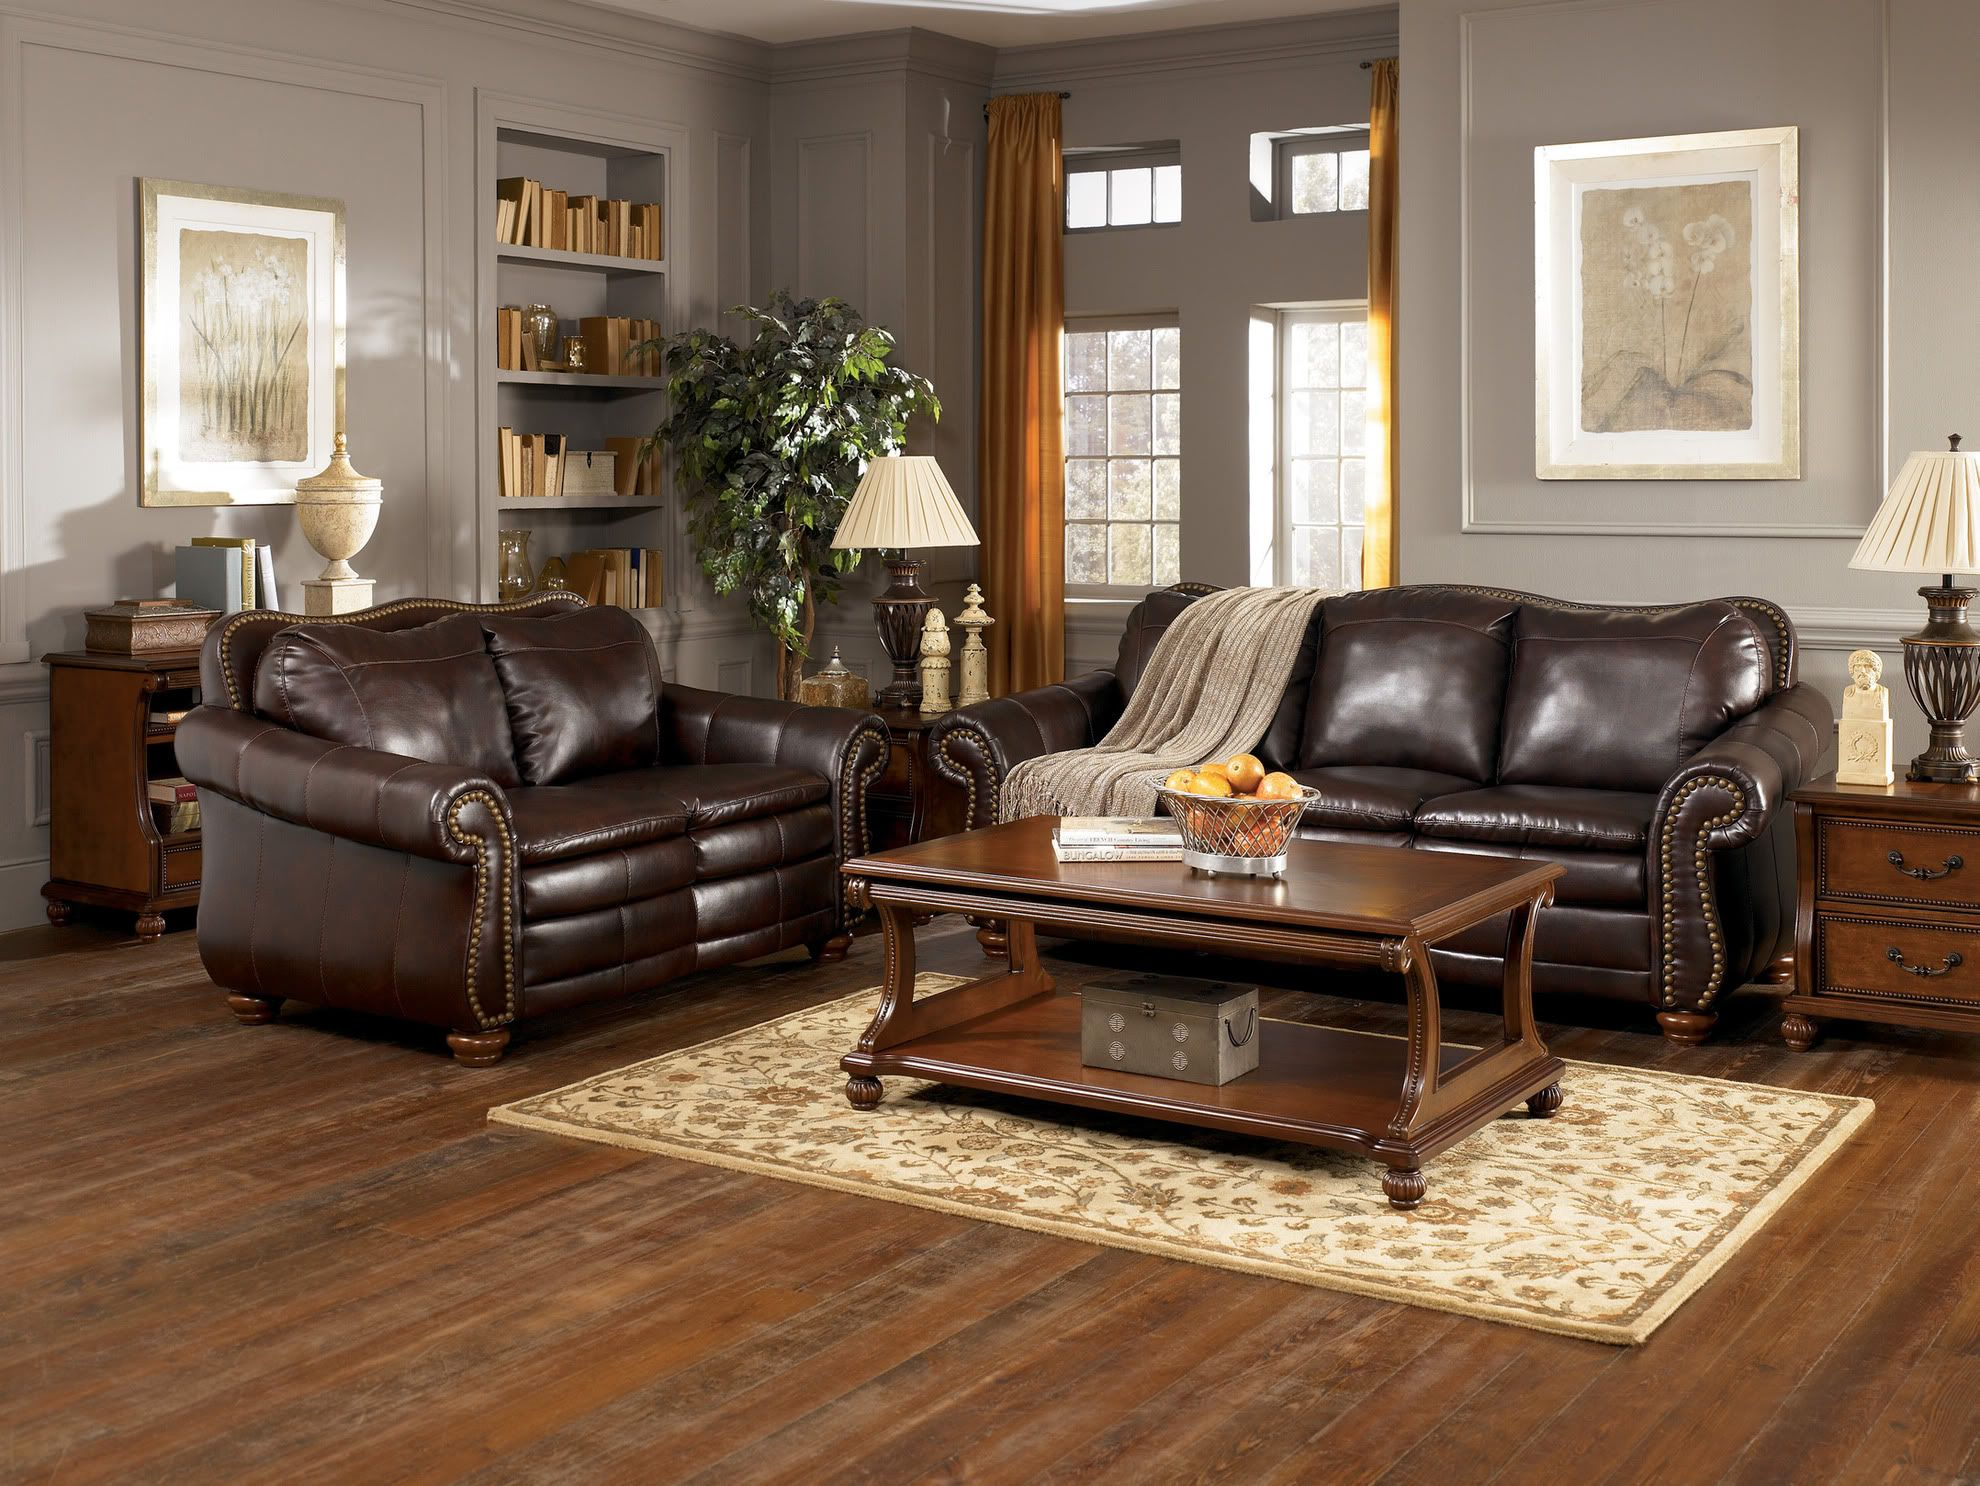 Likeness Of Rustic Living Room Ideas Modern Living Room